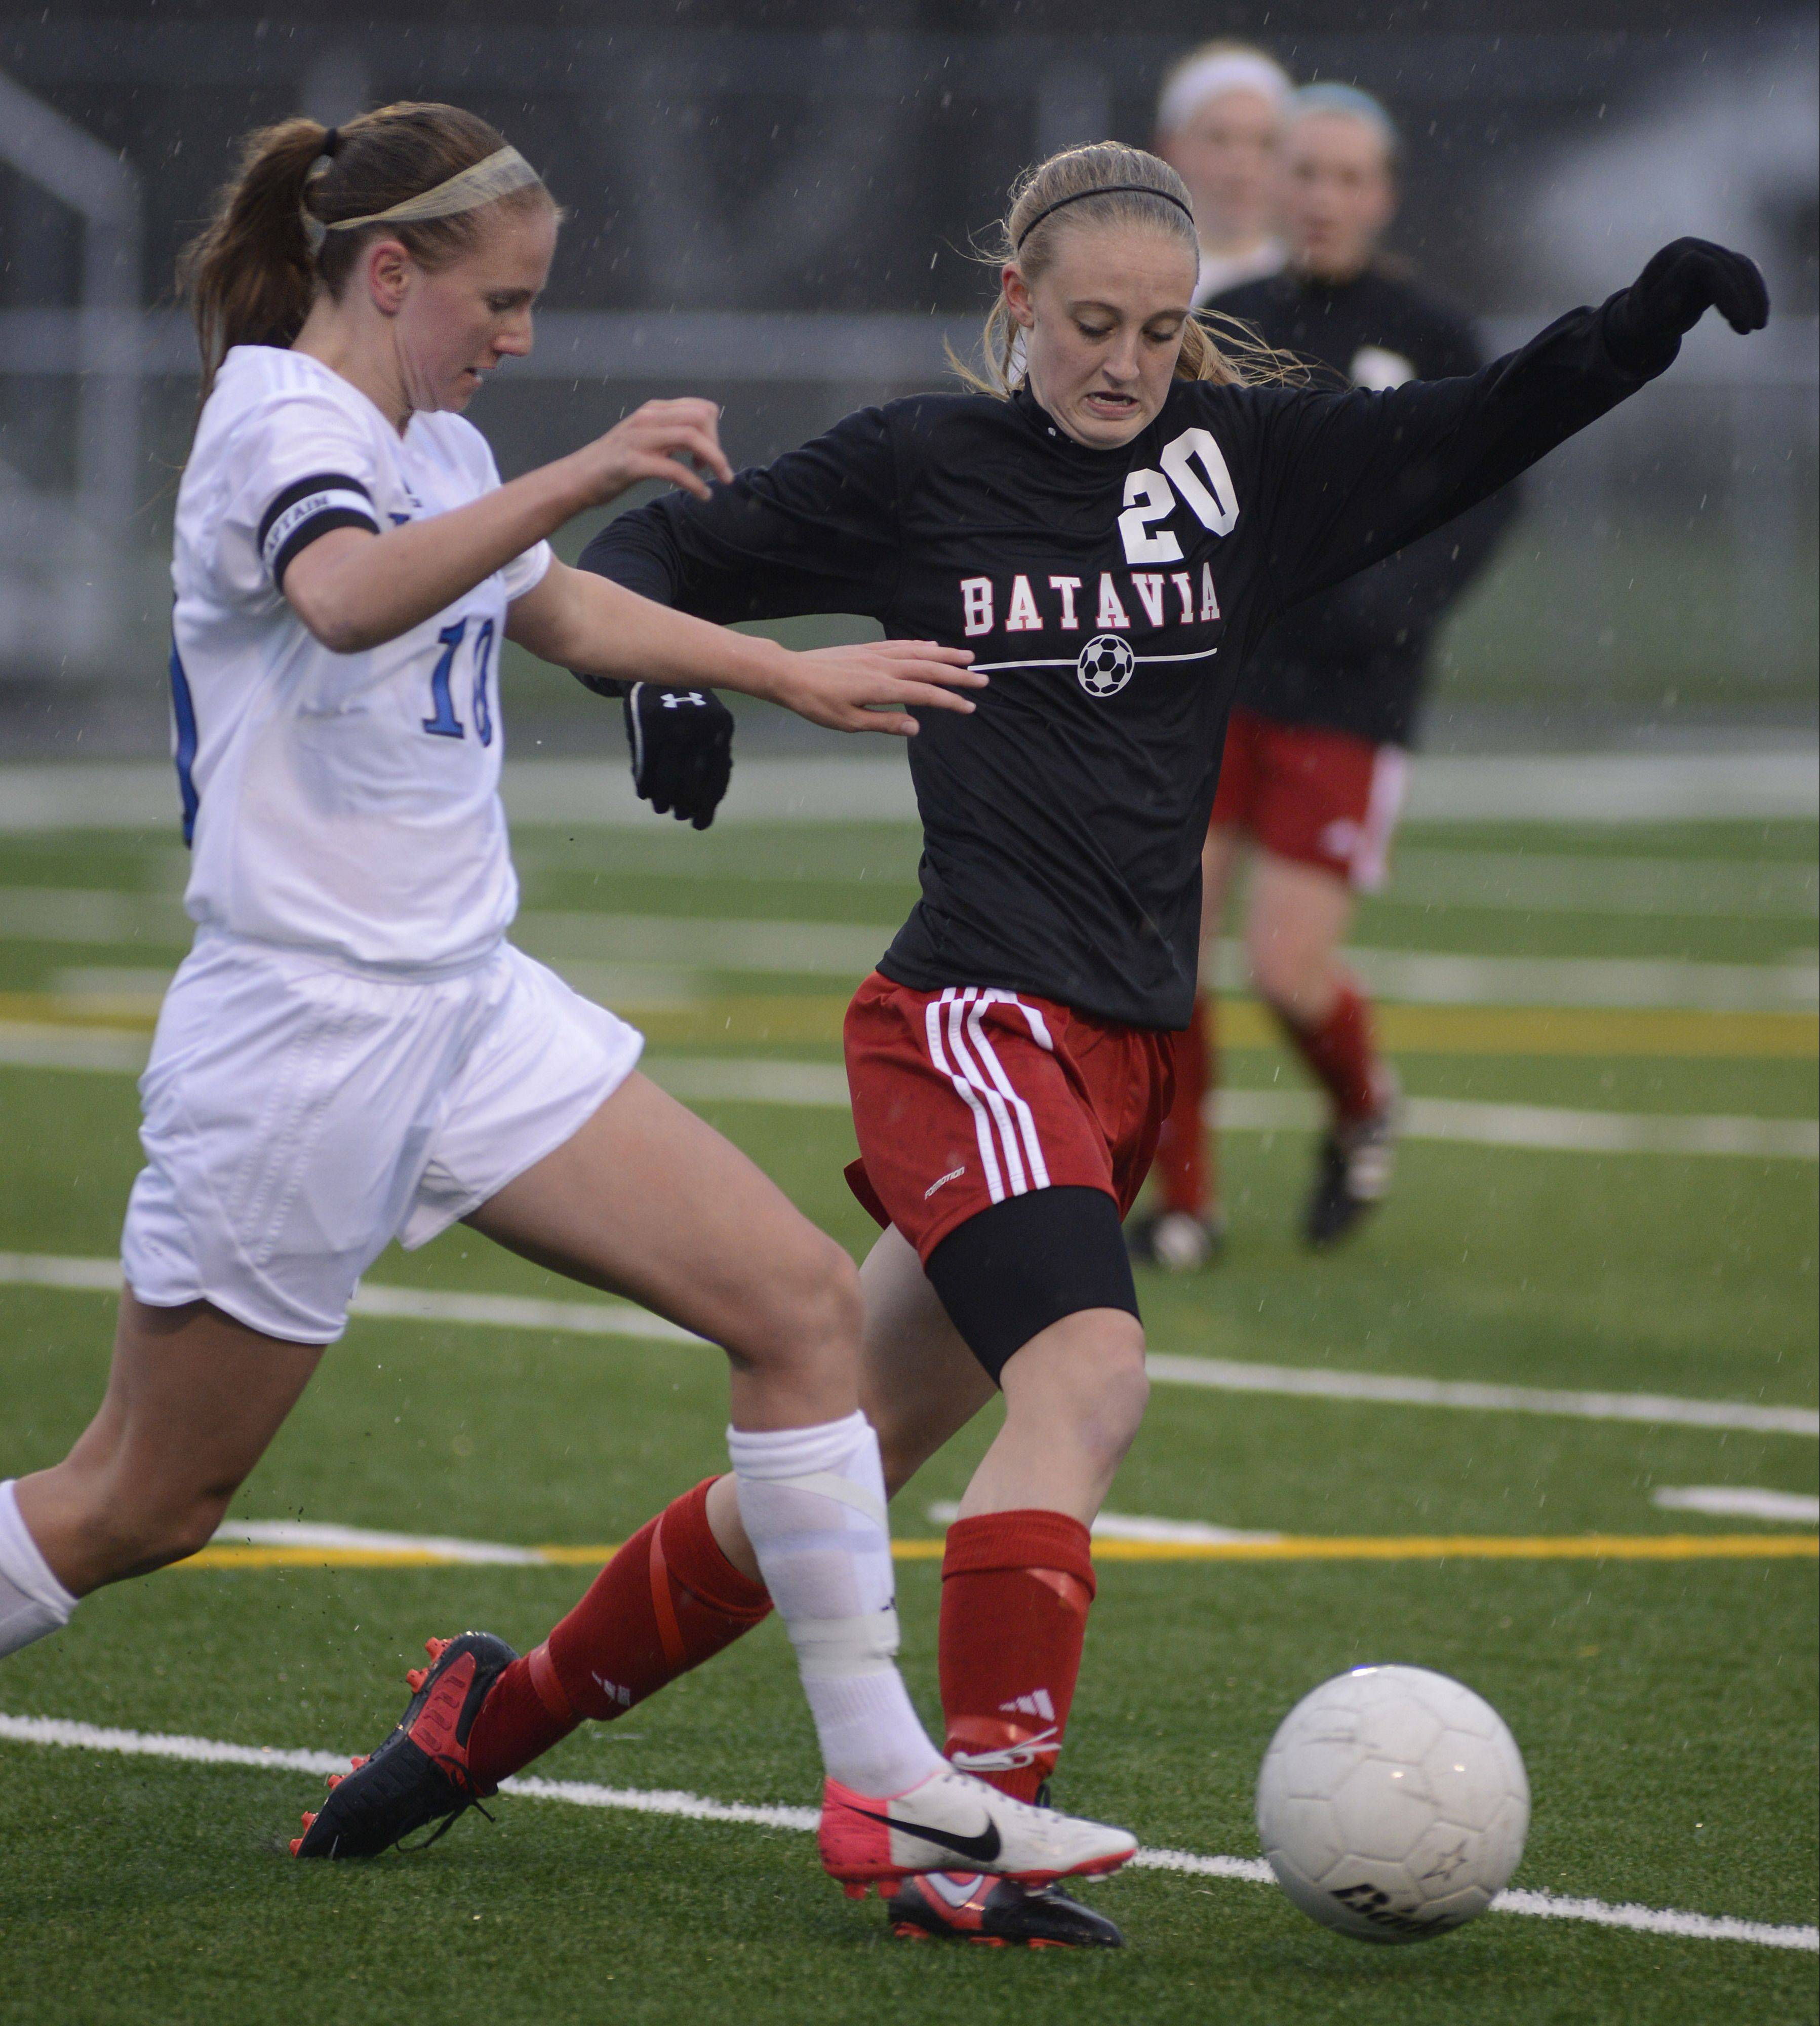 Geneva's Amanda Lulek and Batavia's Shelby Stone fight for the ball in the first half on Tuesday.